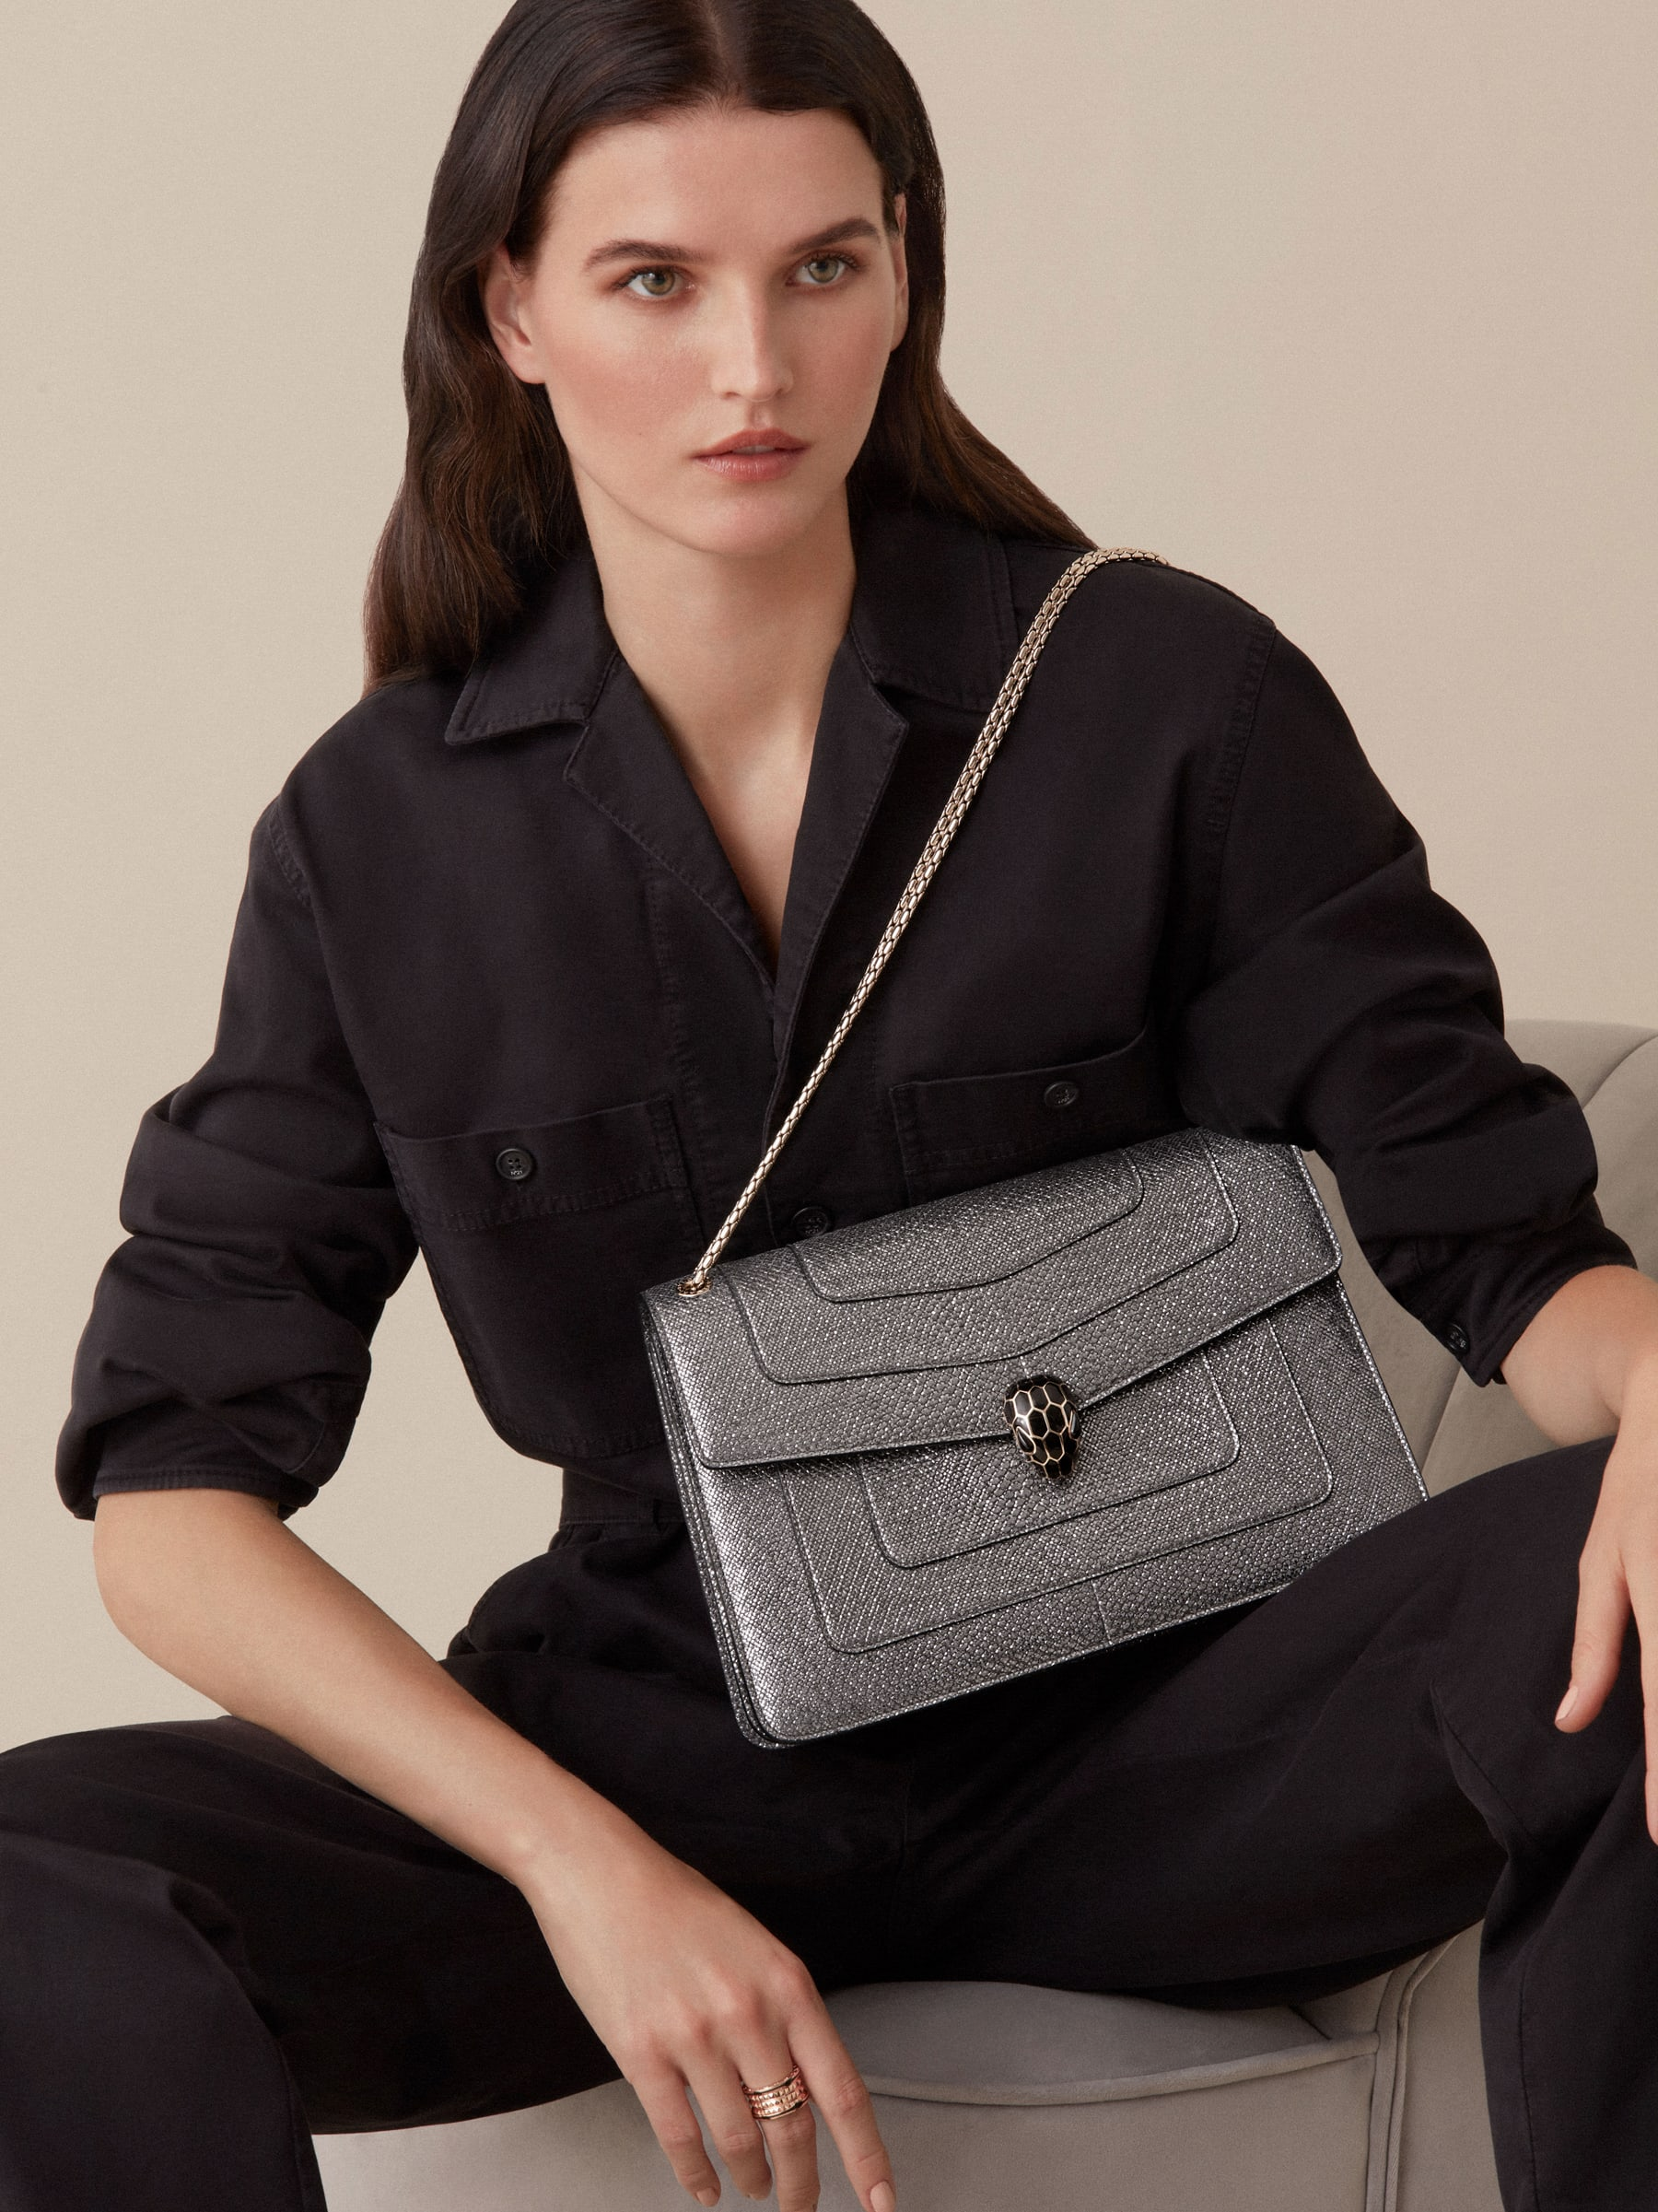 """""""Serpenti Forever"""" shoulder bag in Charcoal Diamond grey metallic karung skin with Charcoal Diamond grey nappa leather internal lining. Tempting snakehead closure light gold plated brass enriched with black and glitter Hawk's Eye grey enamel and black onyx eyes. 1089-MK image 3"""